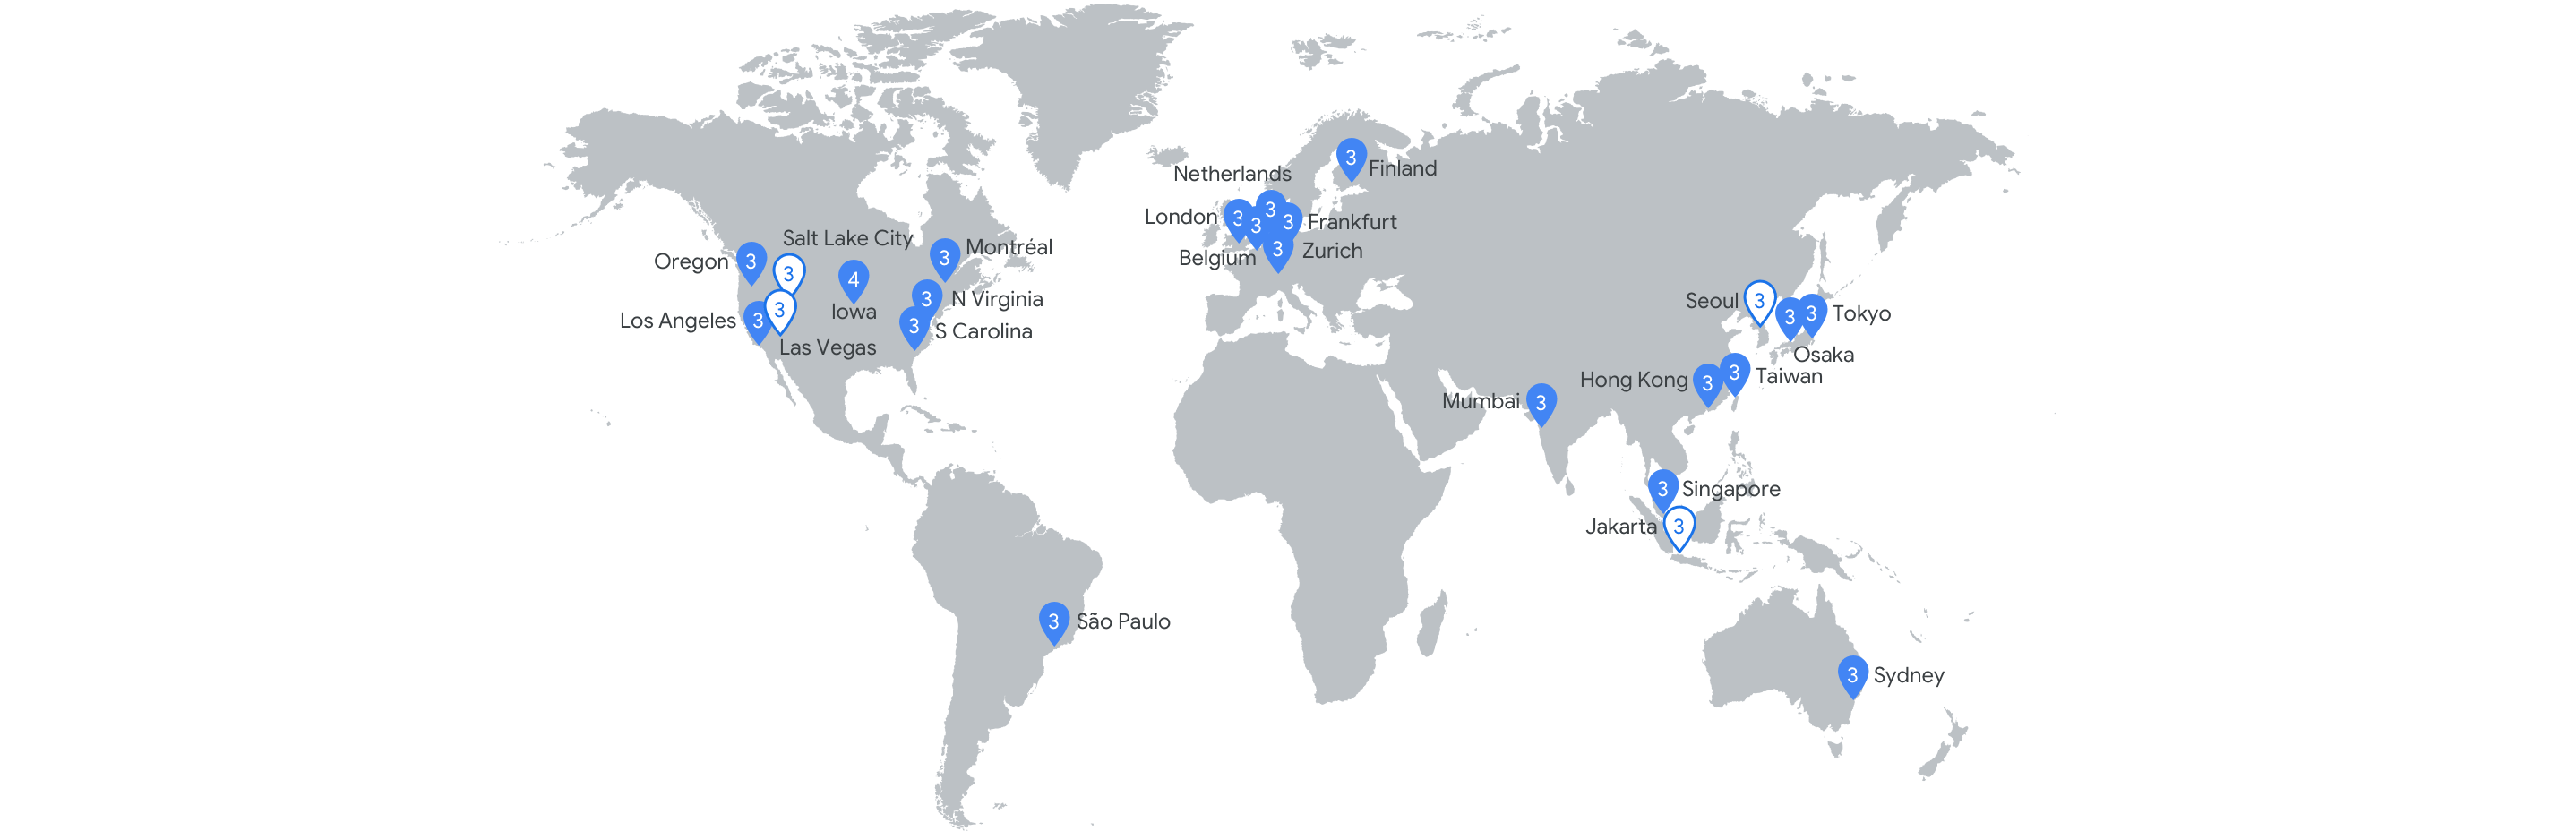 Google Cloud Compute Platform regions